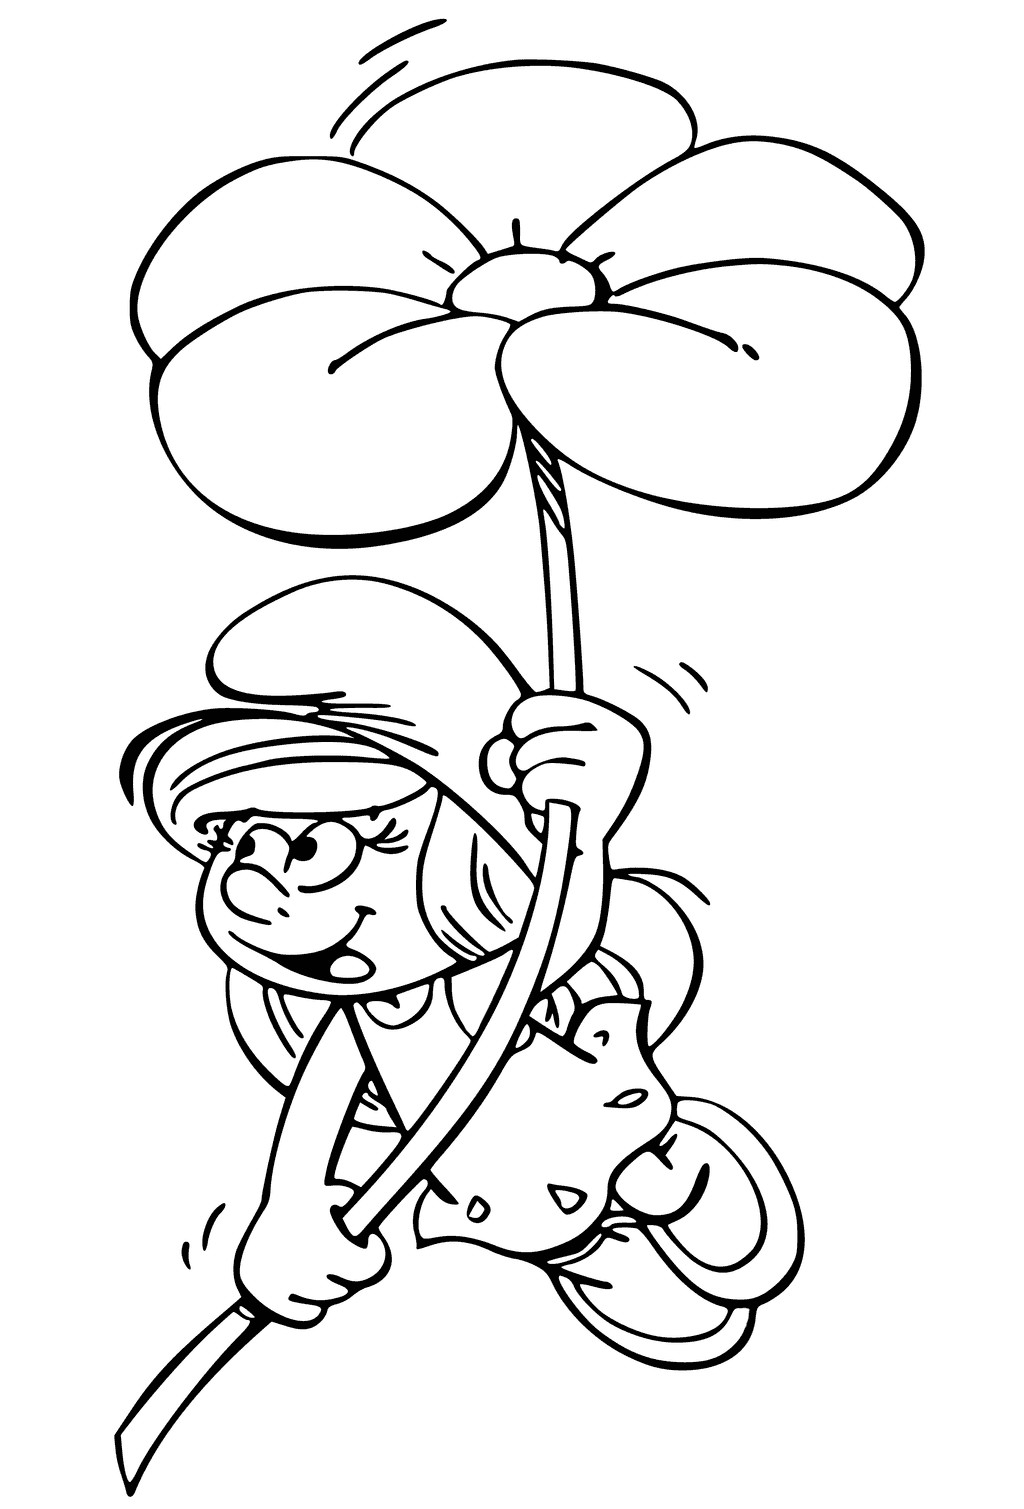 Smurf Coloring Pages  Top 11 Smurfs The Lost Village 2017 Coloring Pages